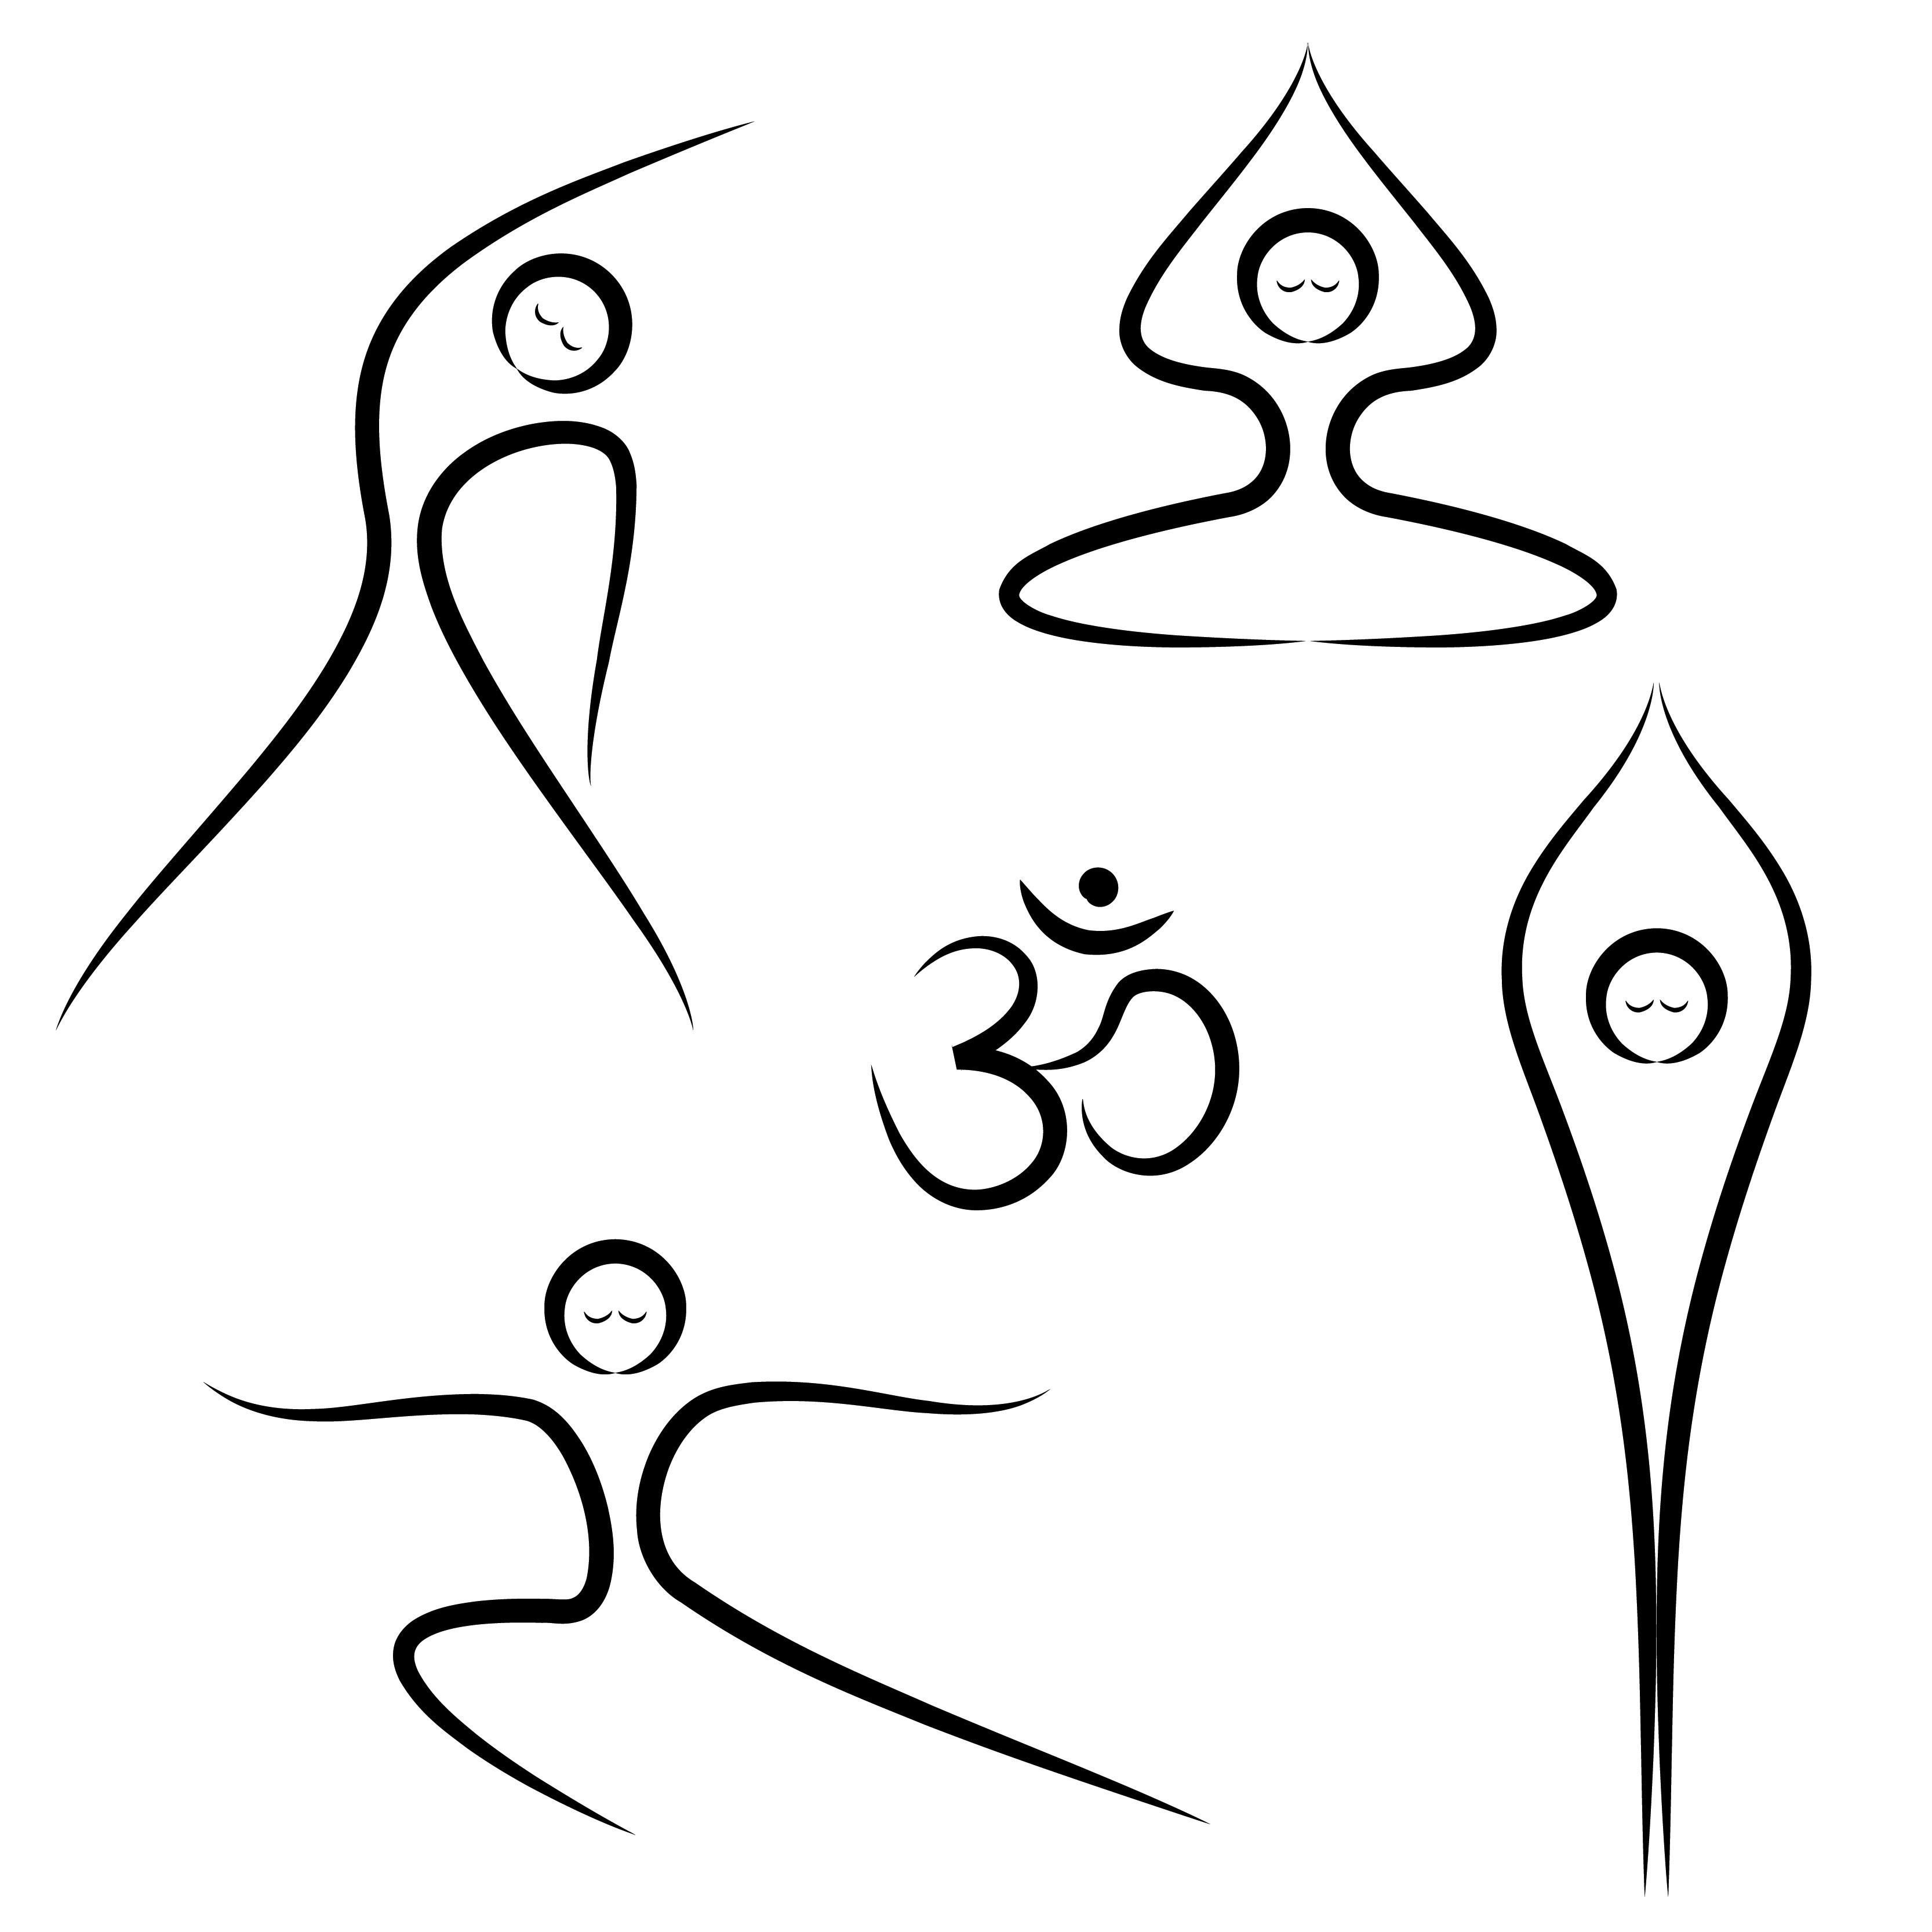 3333x3333 Four Stick Figures Doing Different Yoga Postures. Yoni Yoga Birth